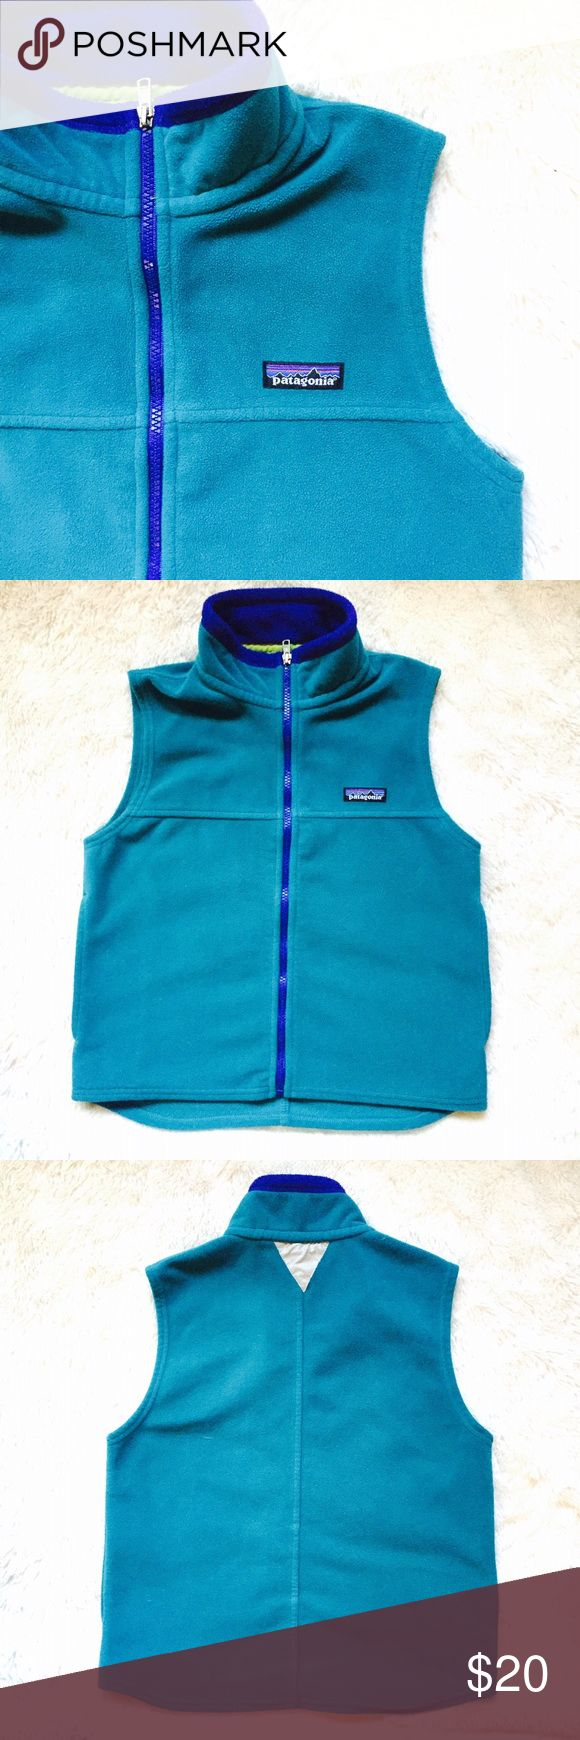 """🆕 Kids Patagonia Vest 7/8 Great fleece vest by Patagonia I believe the style is synchilla. In a gorgeous aqua blue turquoise color with a dark blue trim. Would look great on a boy or a girl. Kids size small S 7/8. In excellent preowned condition ready to wear. Measures approximately 17.5"""" across the chest and 20"""" in length. Patagonia Jackets & Coats Vests"""